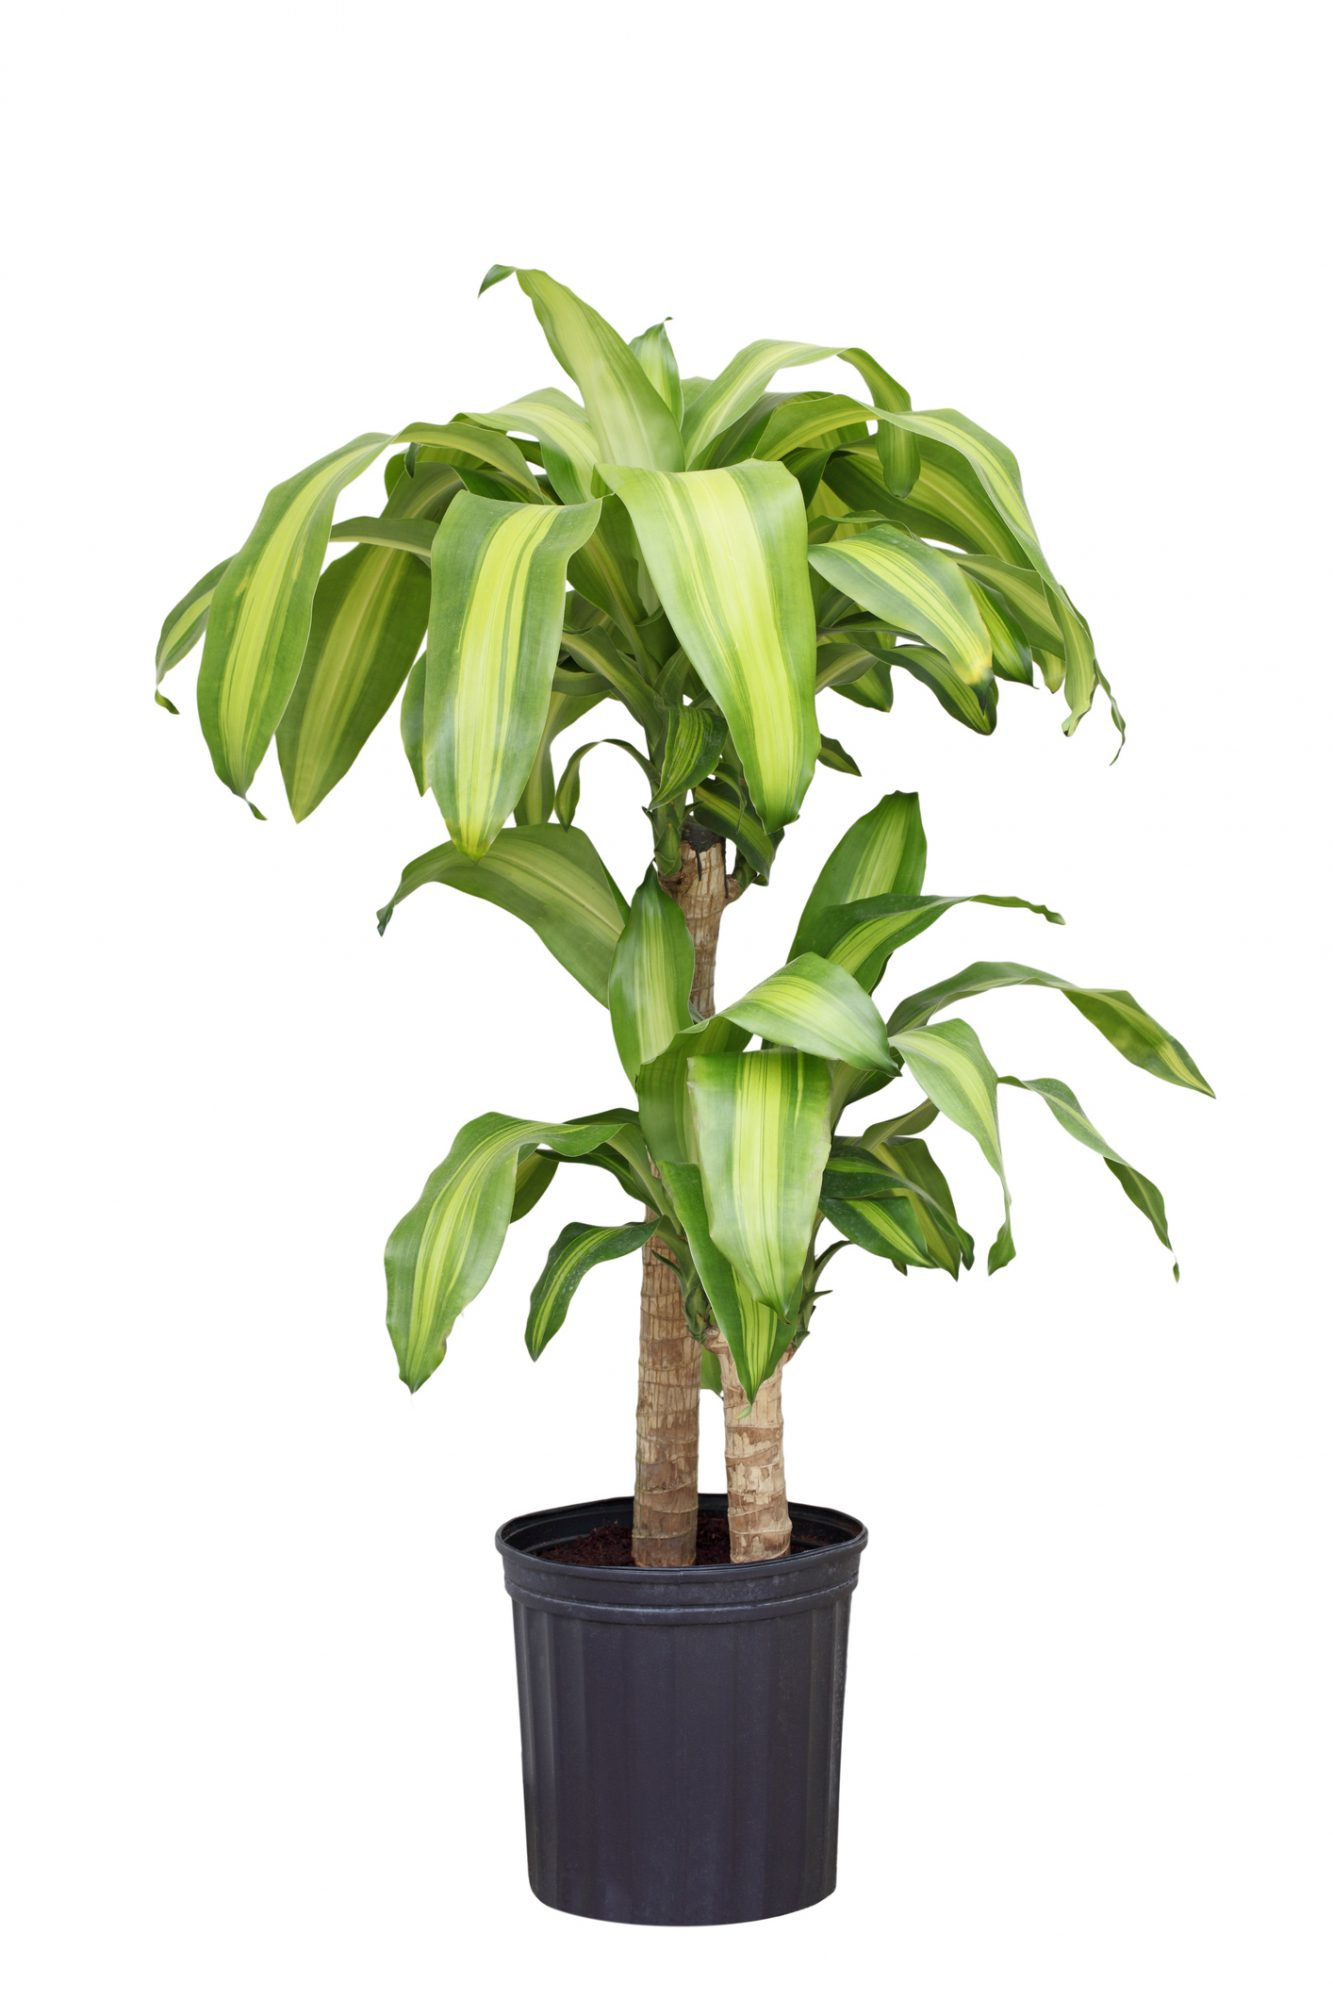 Corn Plant for Indoor